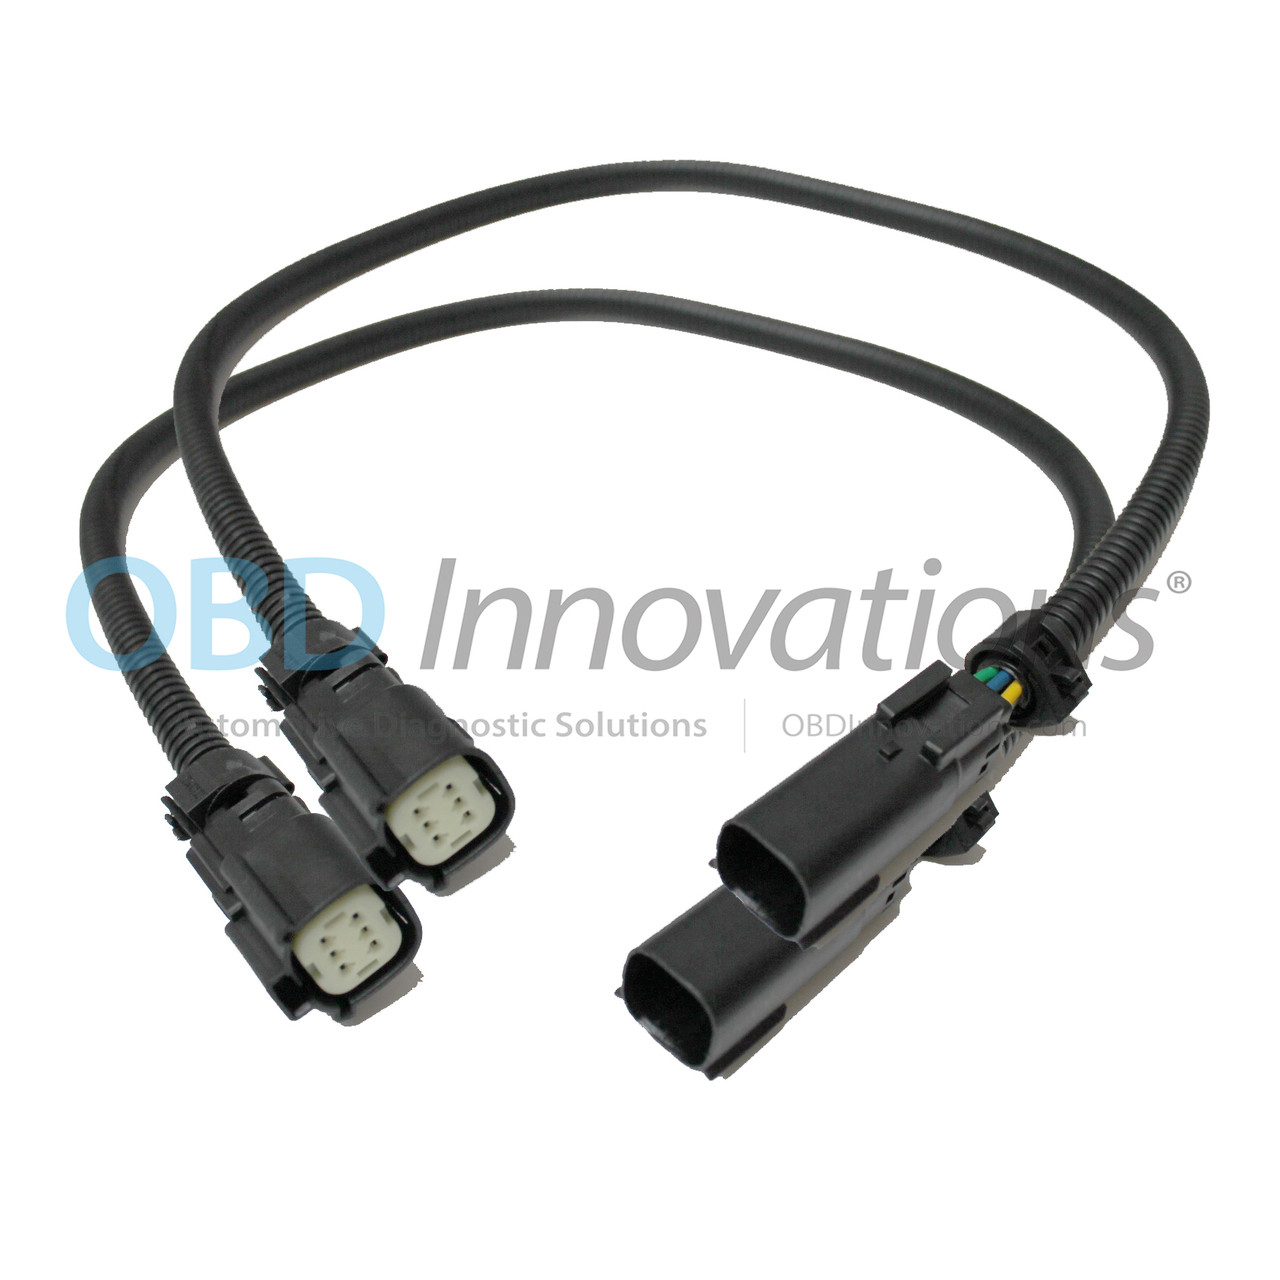 6 pin o2 sensor extension cable 15 17 mustang gt obd innovations gt wiring harness gt toyota tail light connector harness extension [ 1280 x 1280 Pixel ]